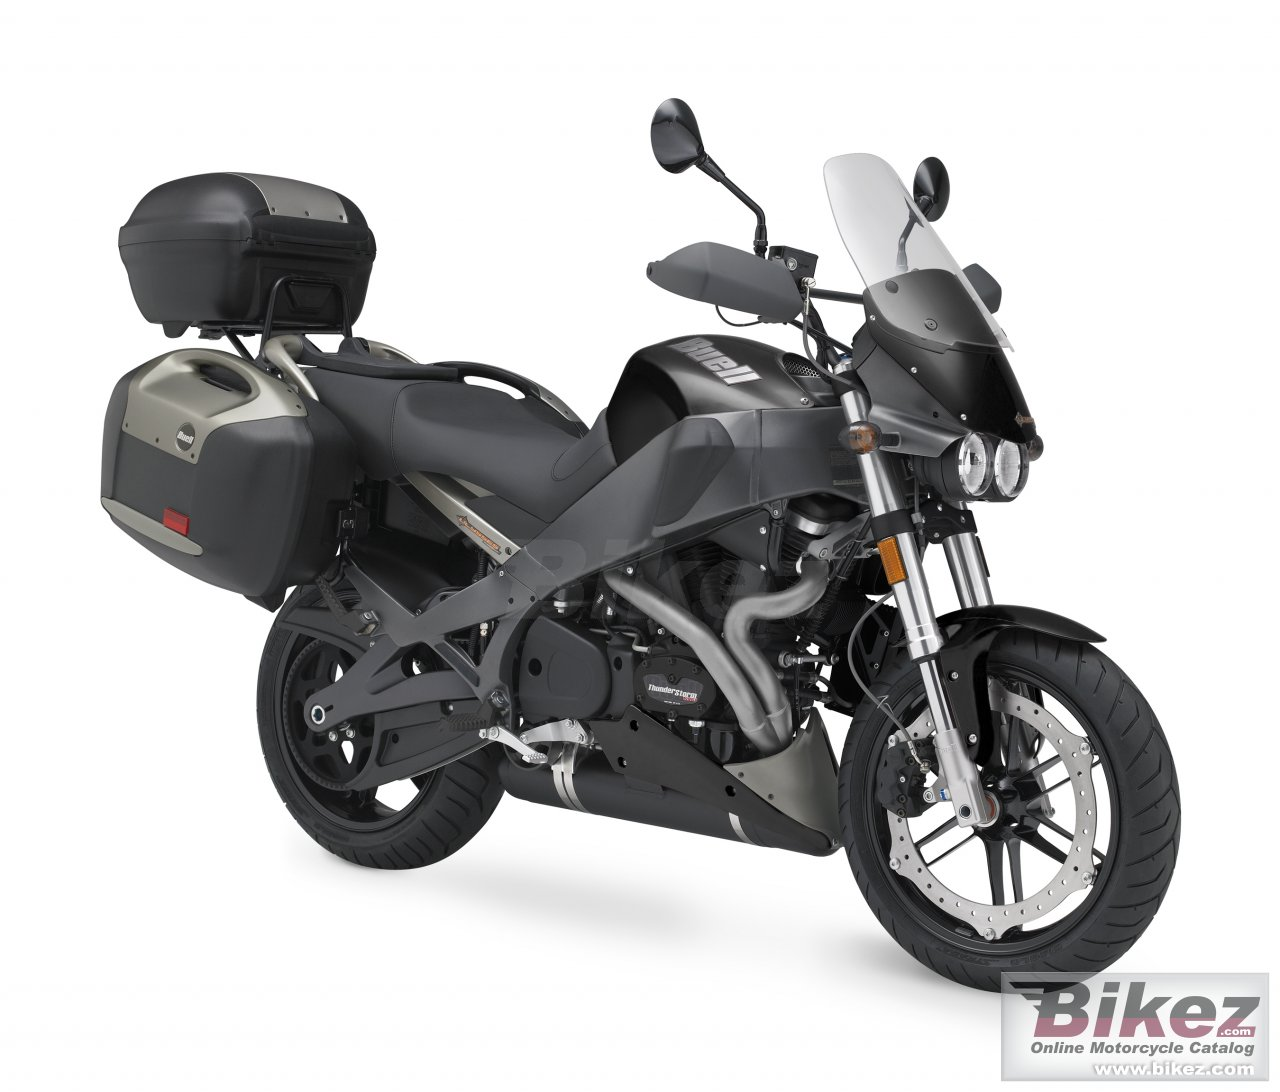 Big Buell ulysses xb12xt picture and wallpaper from Bikez.com